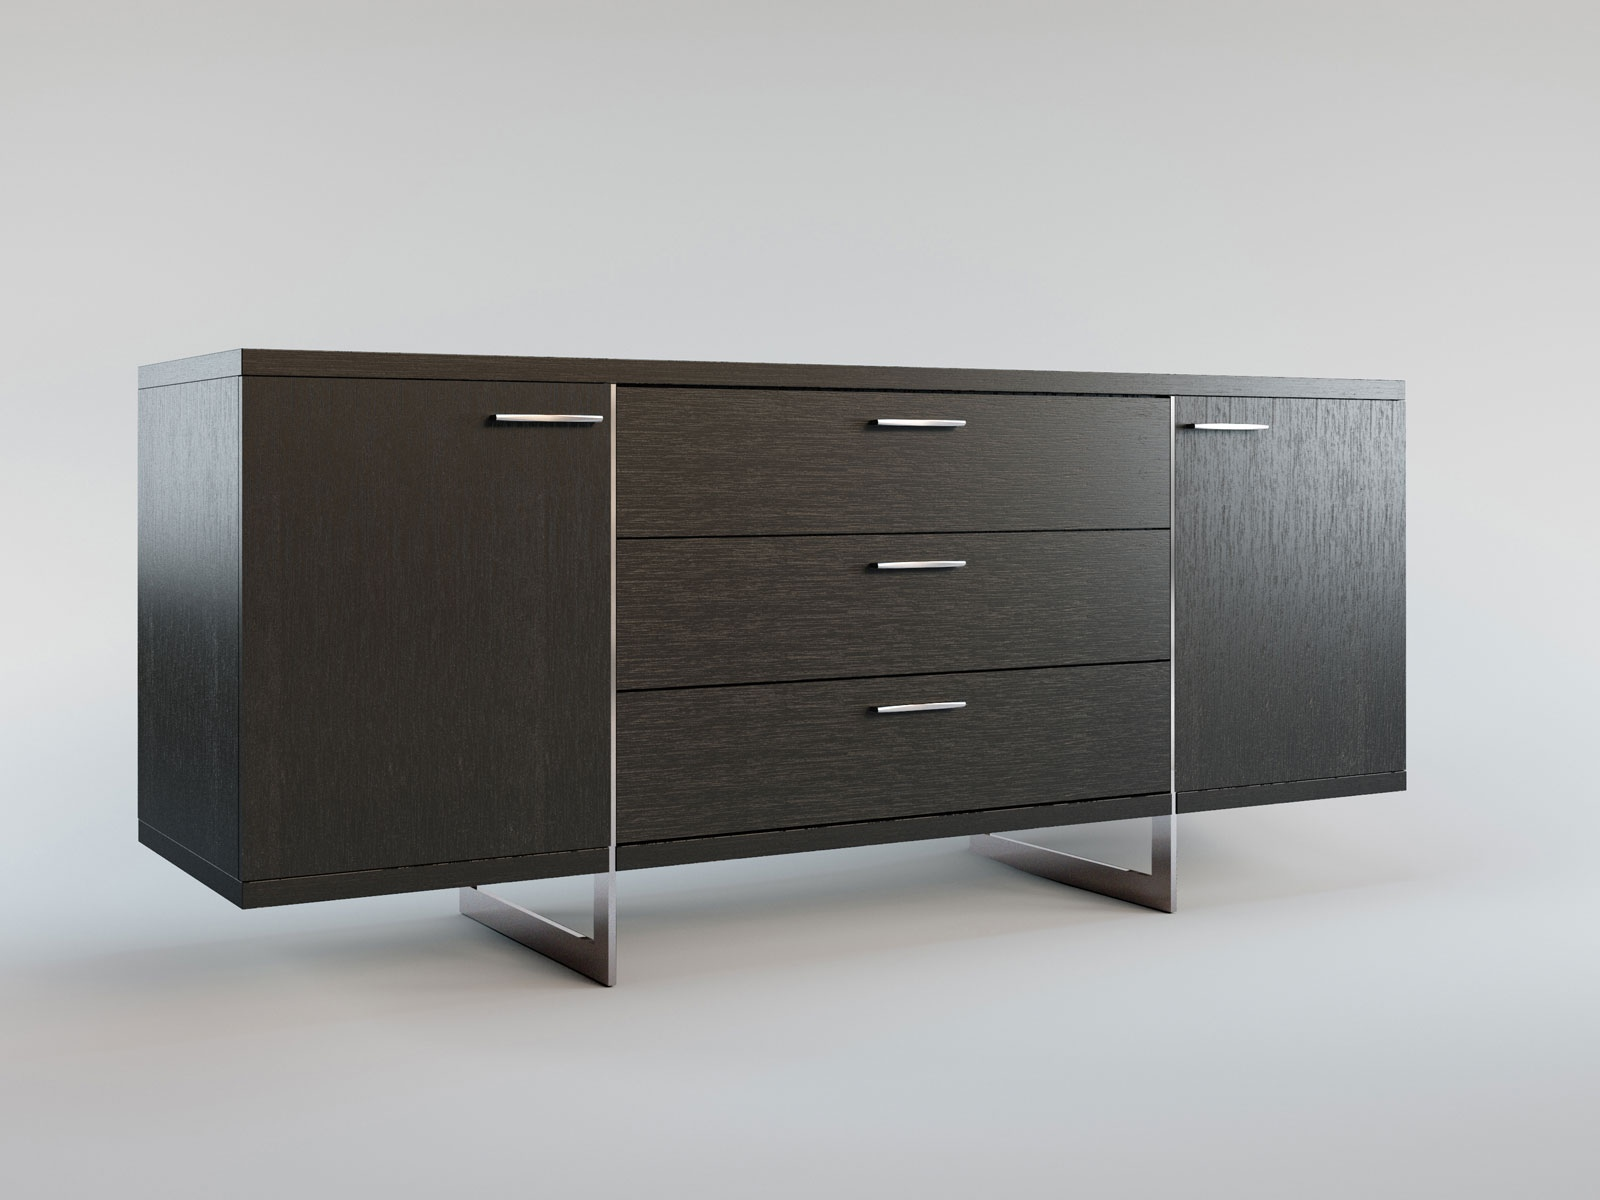 Contemporary buffet table furniture - Contemporary Sideboard Buffet With Three Storage Drawers Tulsa Oklahoma Mlgre